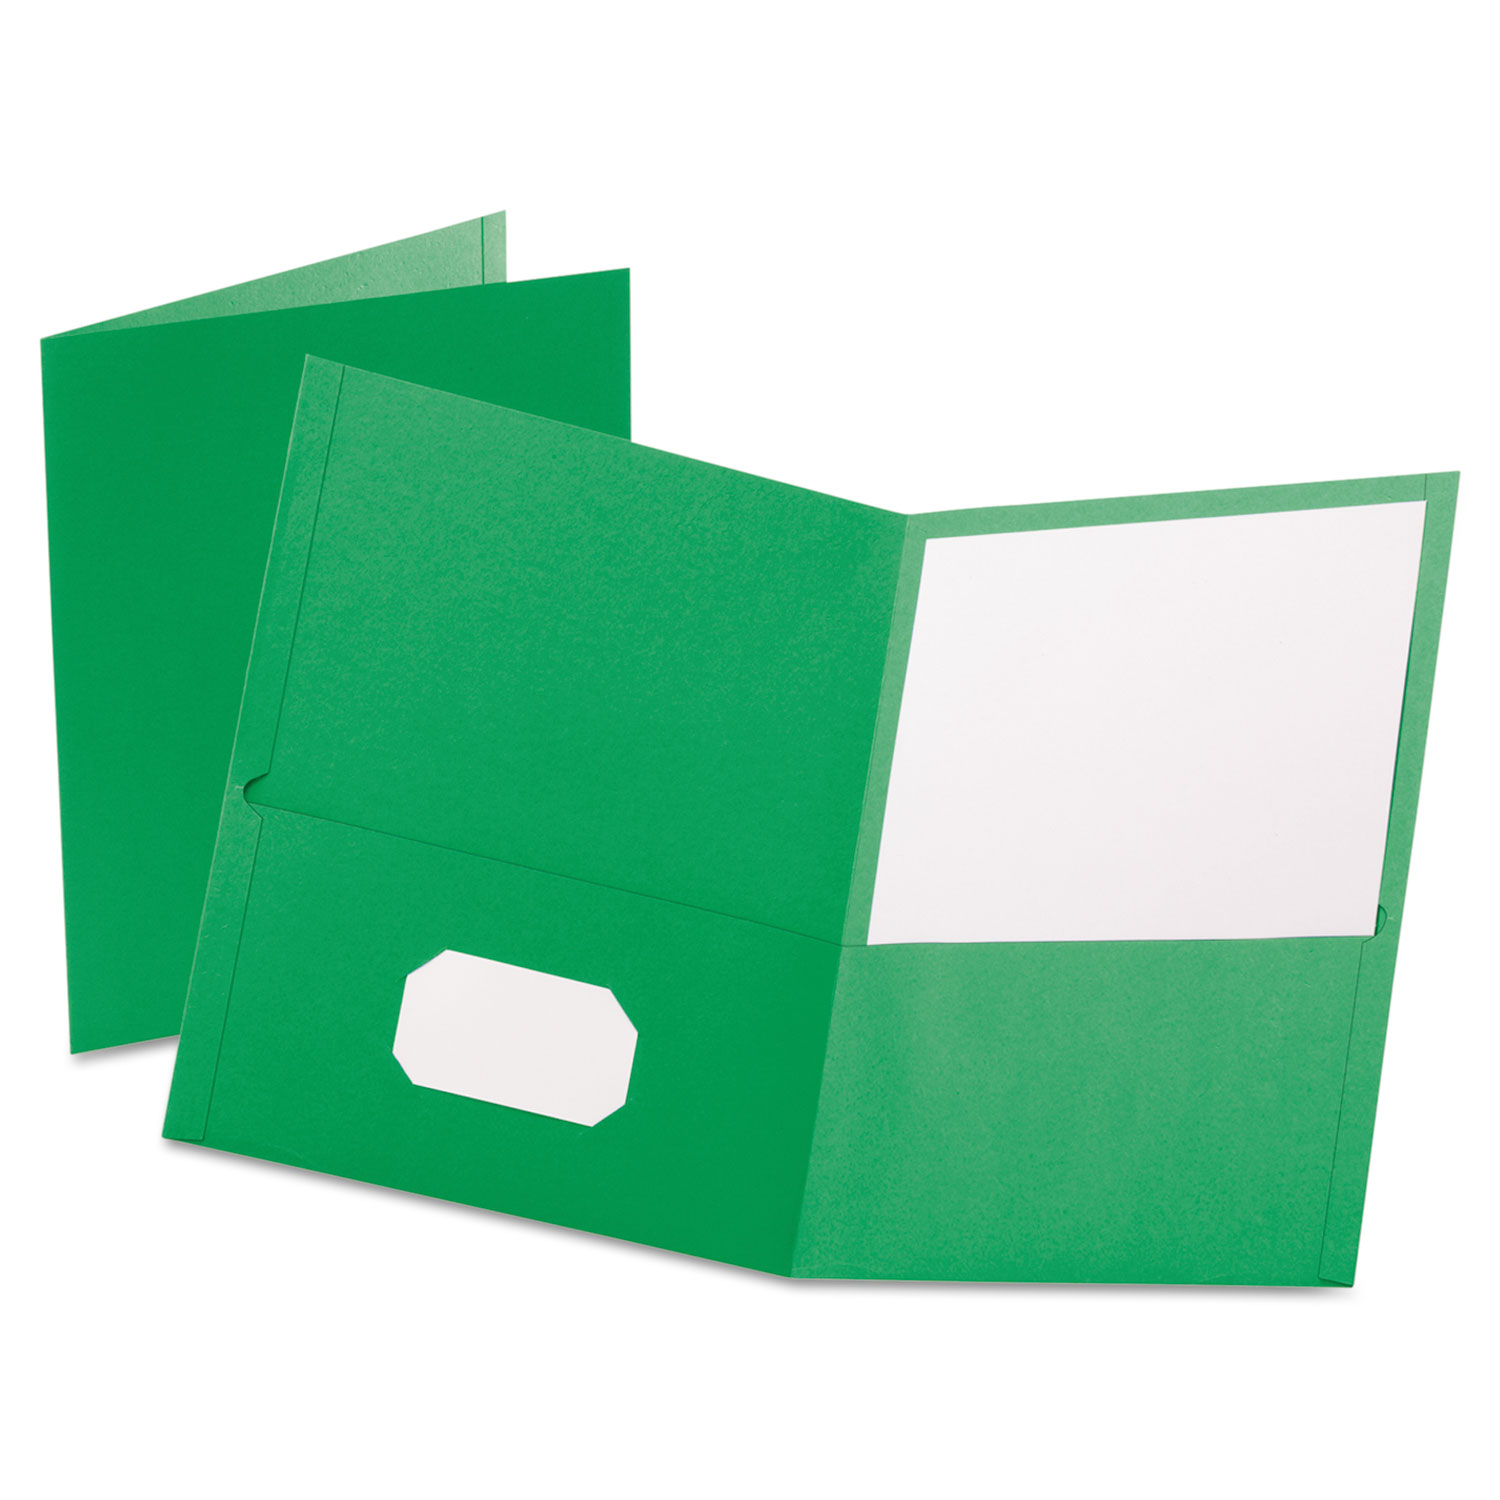 Twin-Pocket Folder, Embossed Leather Grain Paper, Light Green, 25/Box